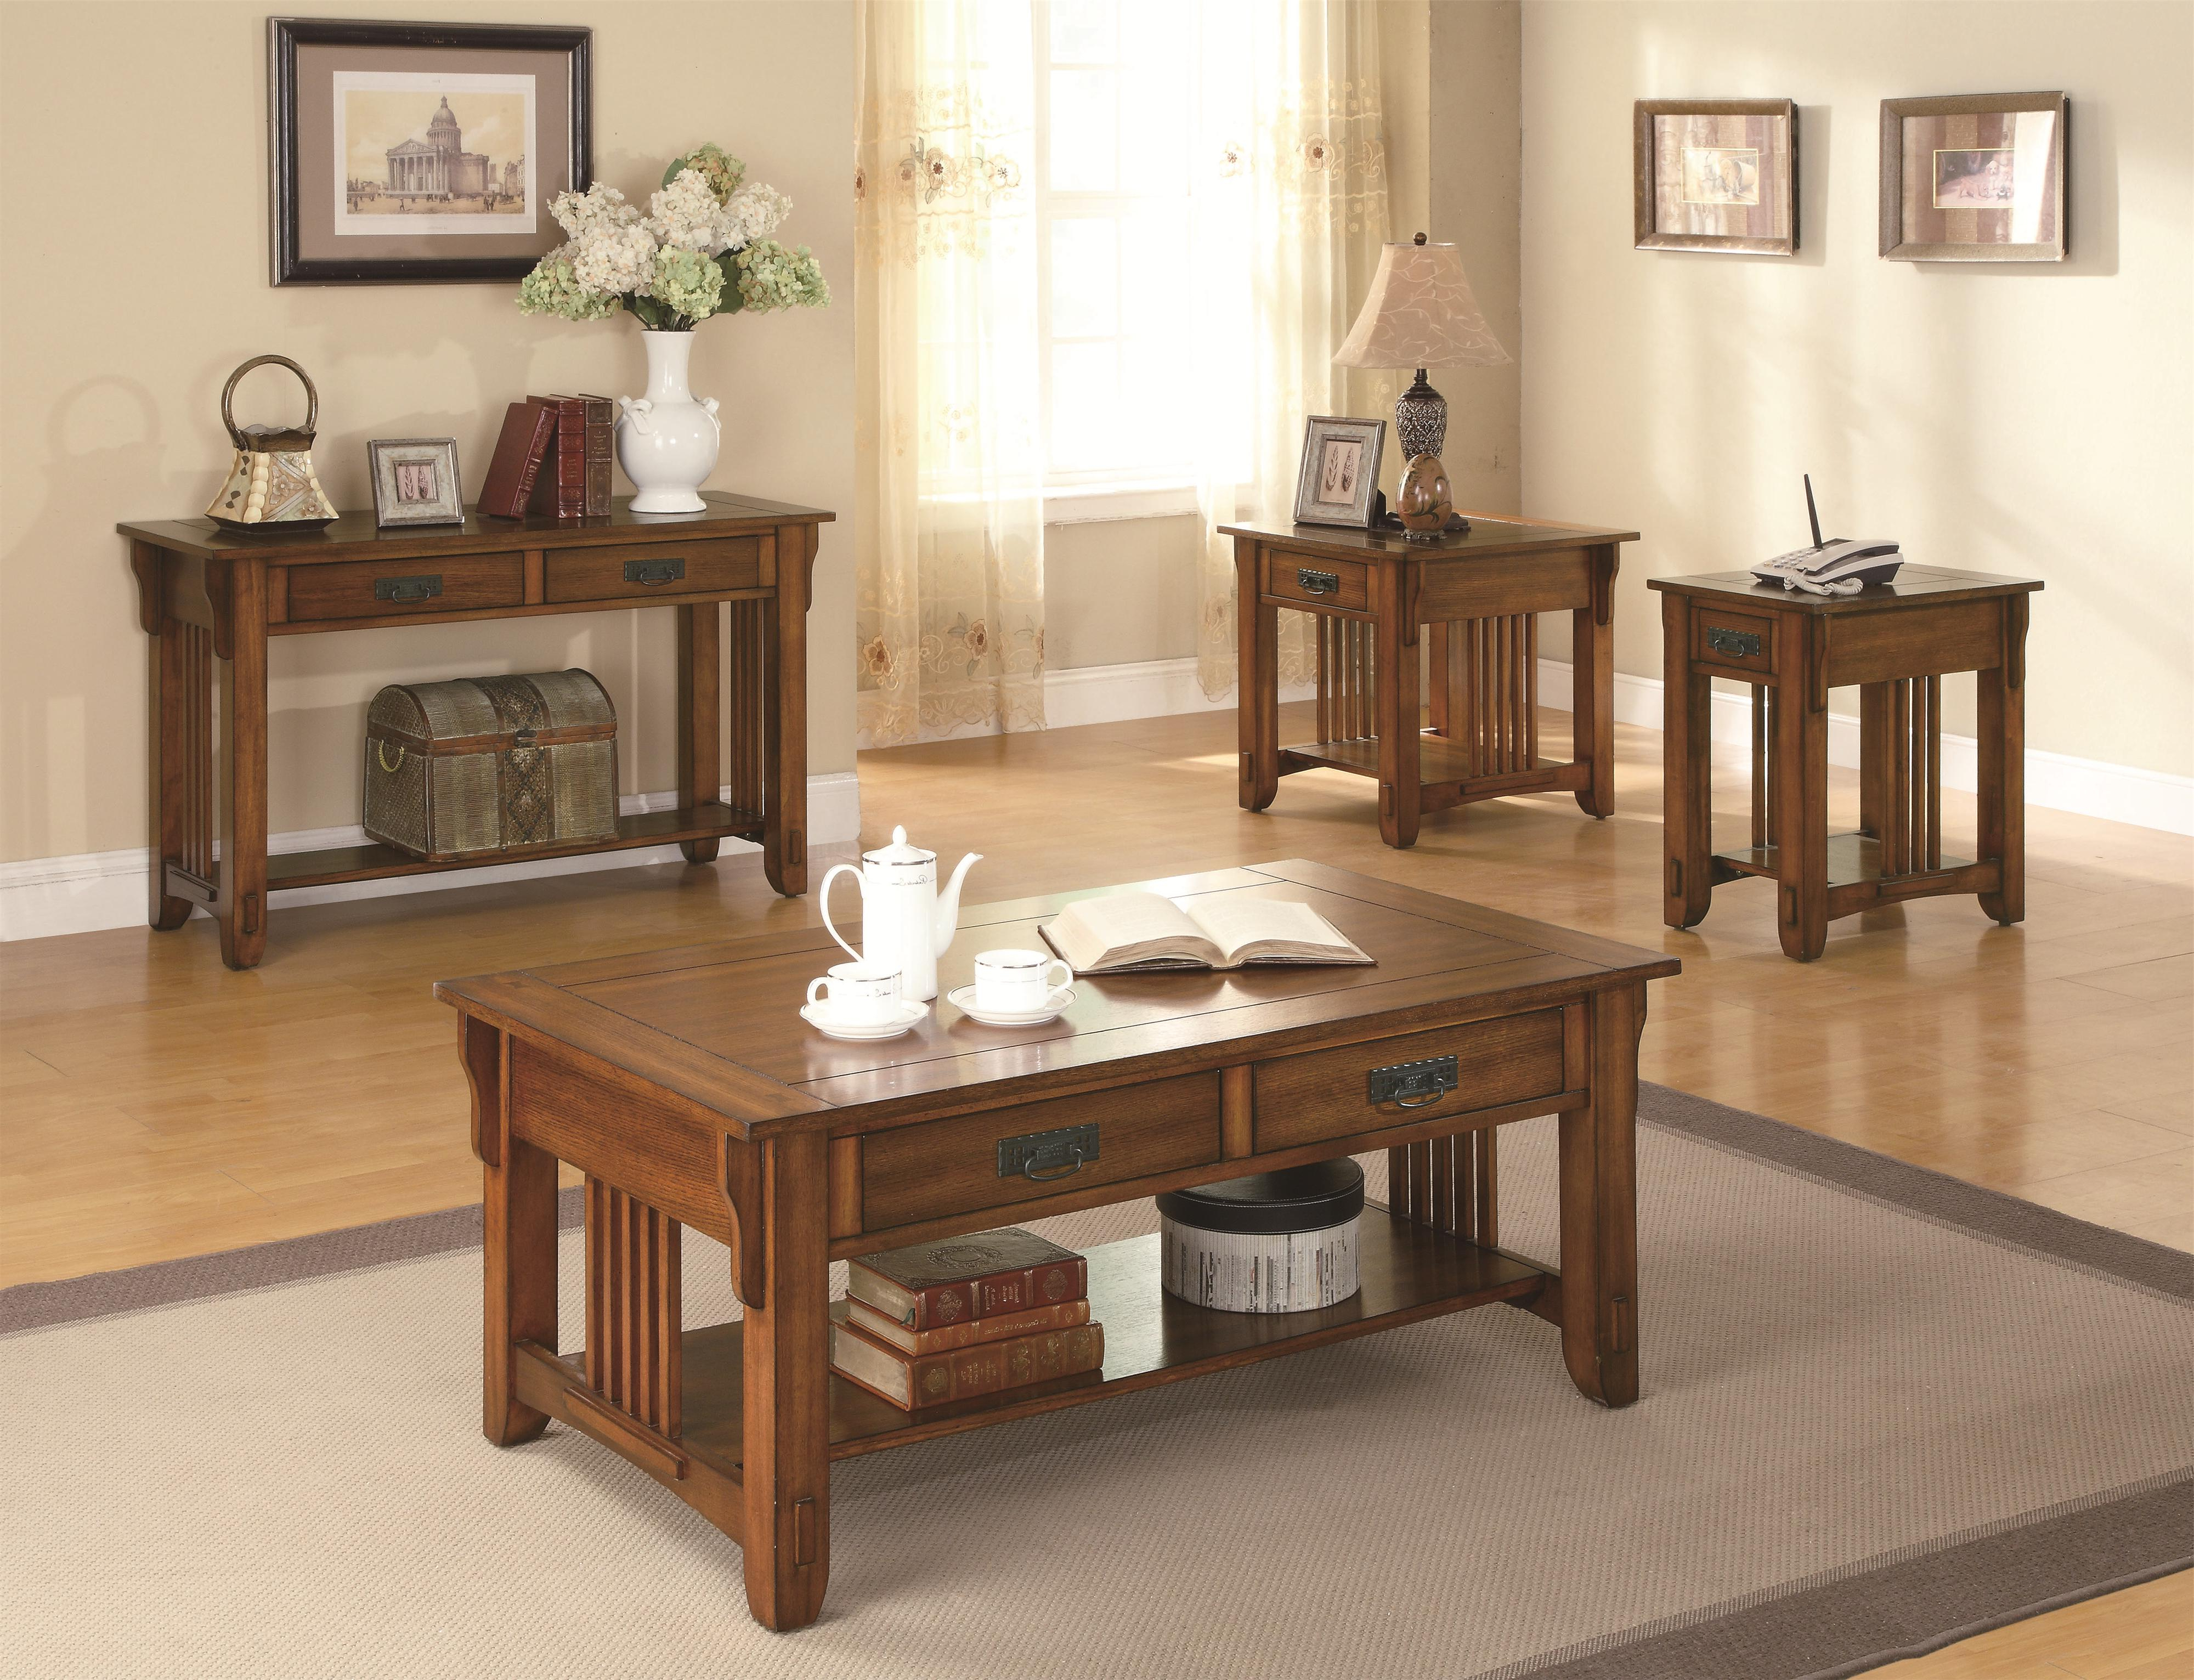 Widely Used Coffee Tables – Traditional Coffee Table Co (View 15 of 20)